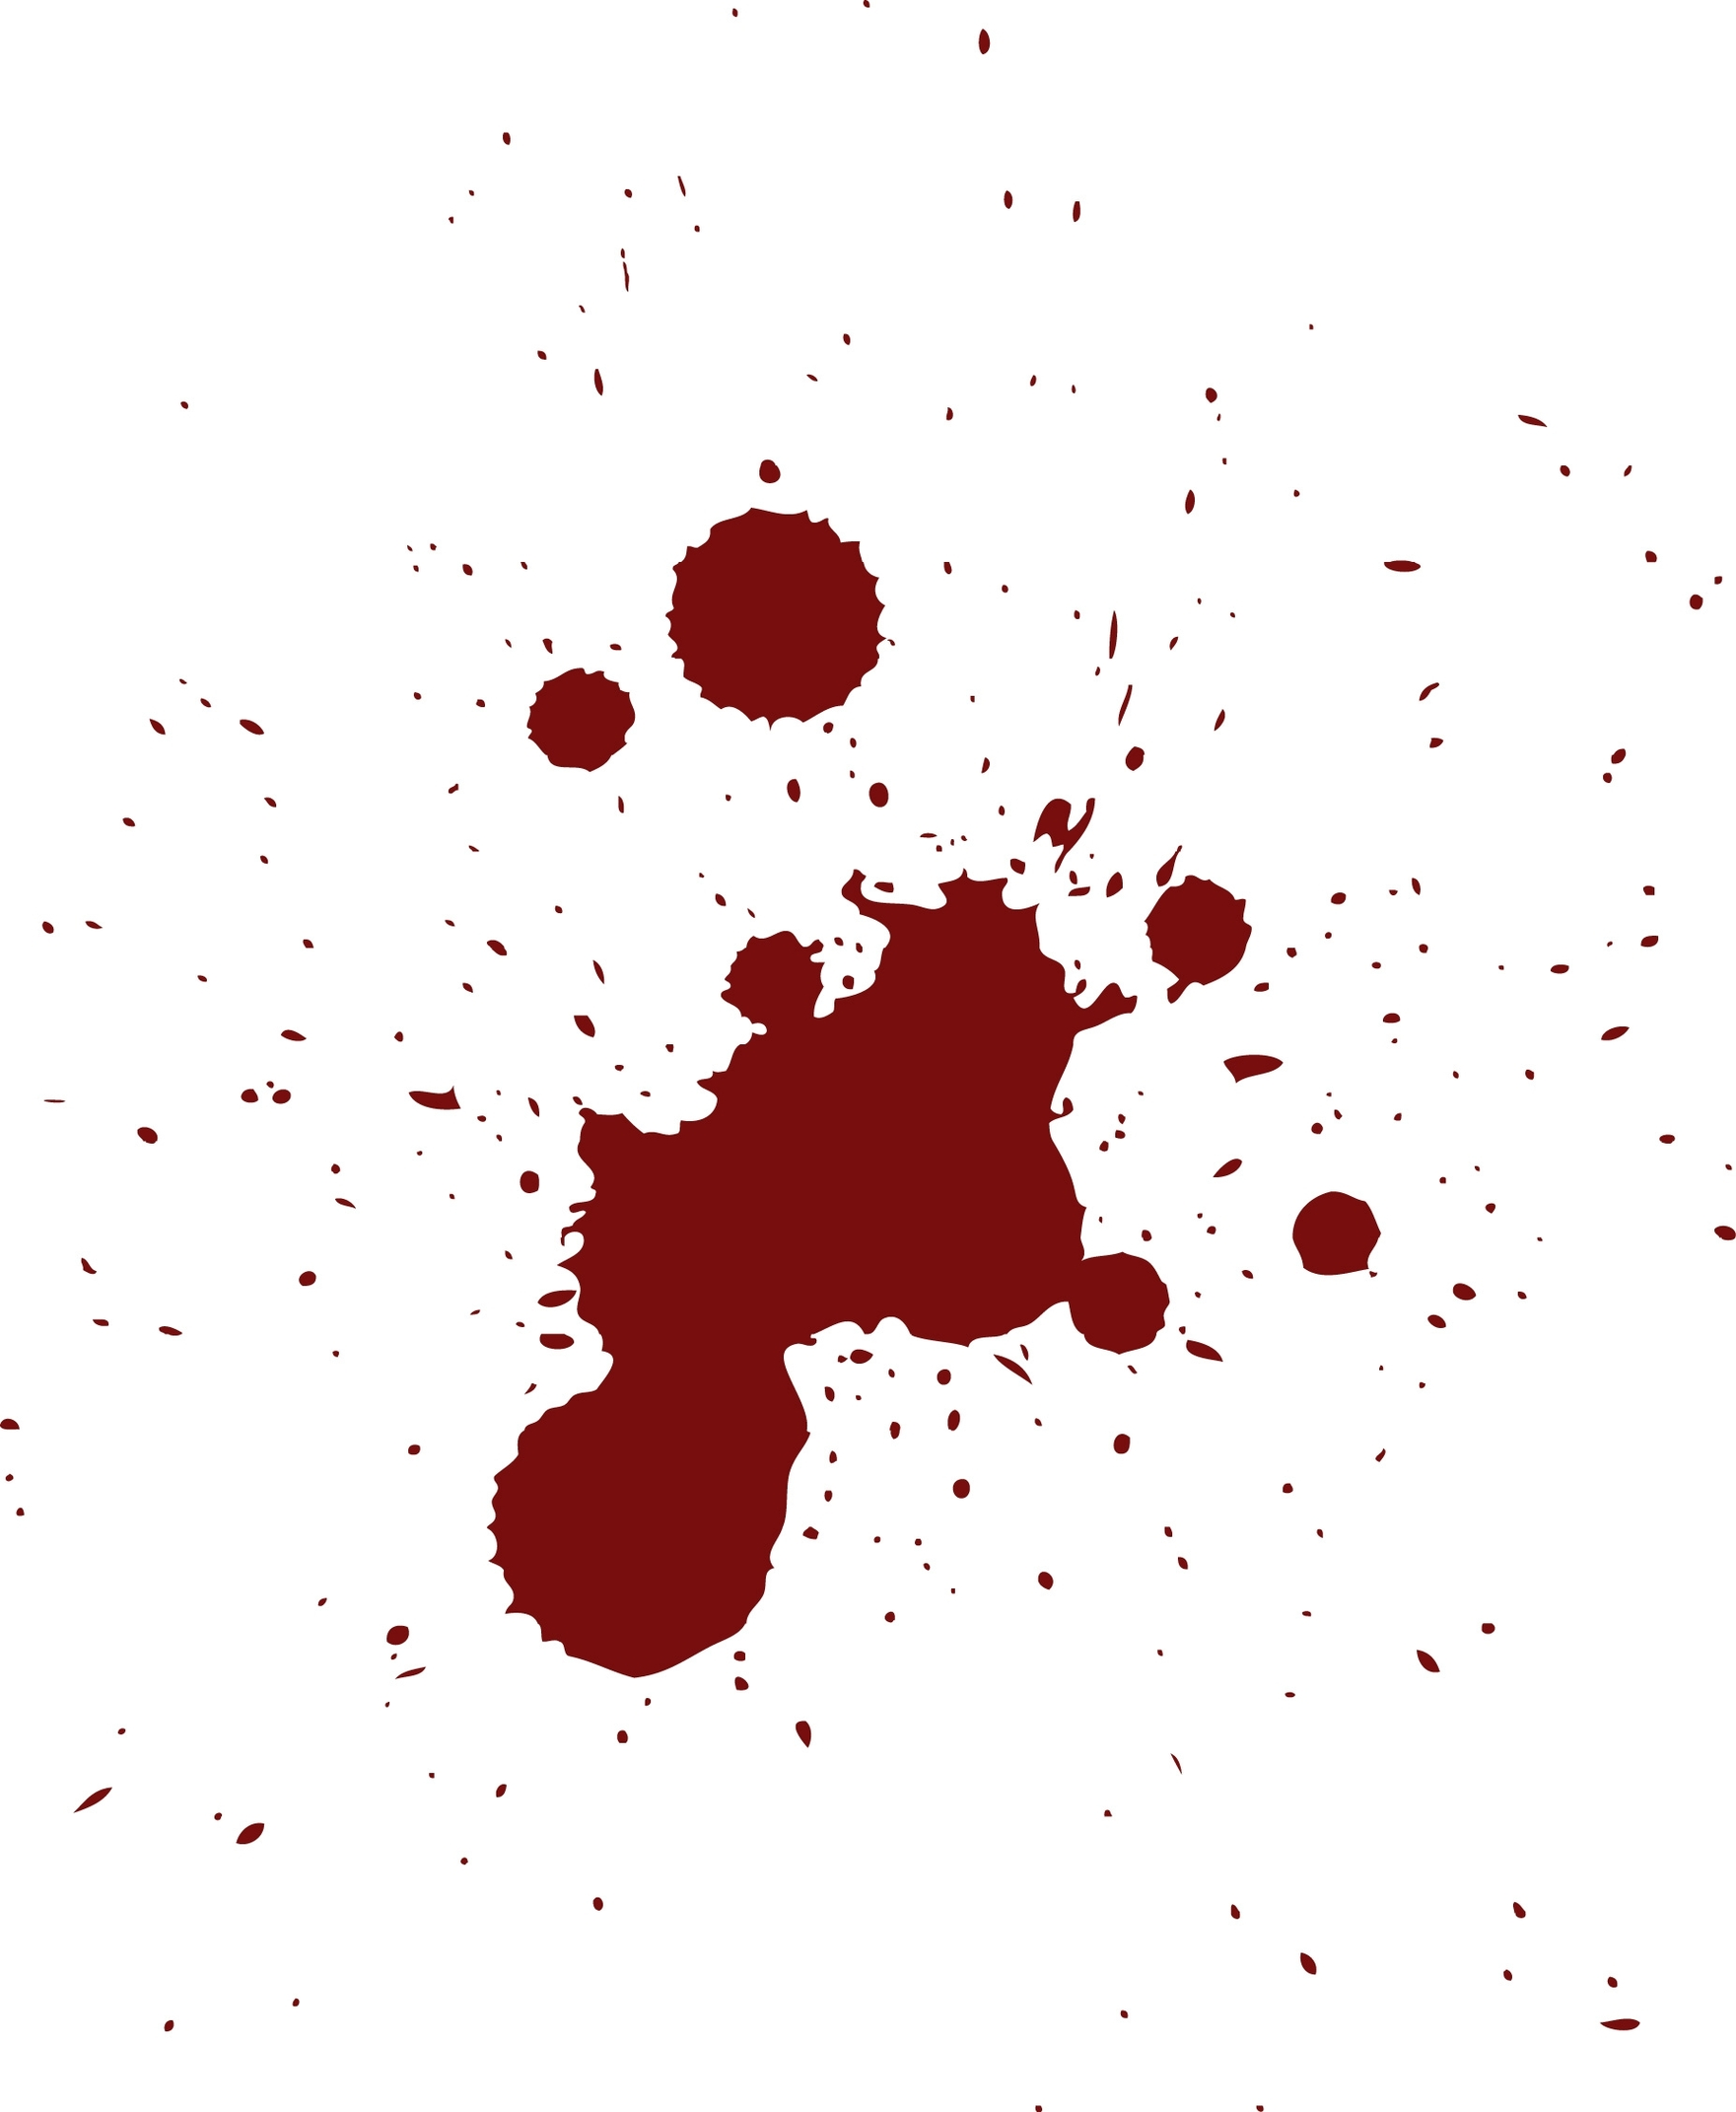 Blood Splatter Png Clipart-Blood Splatter Png Clipart-8